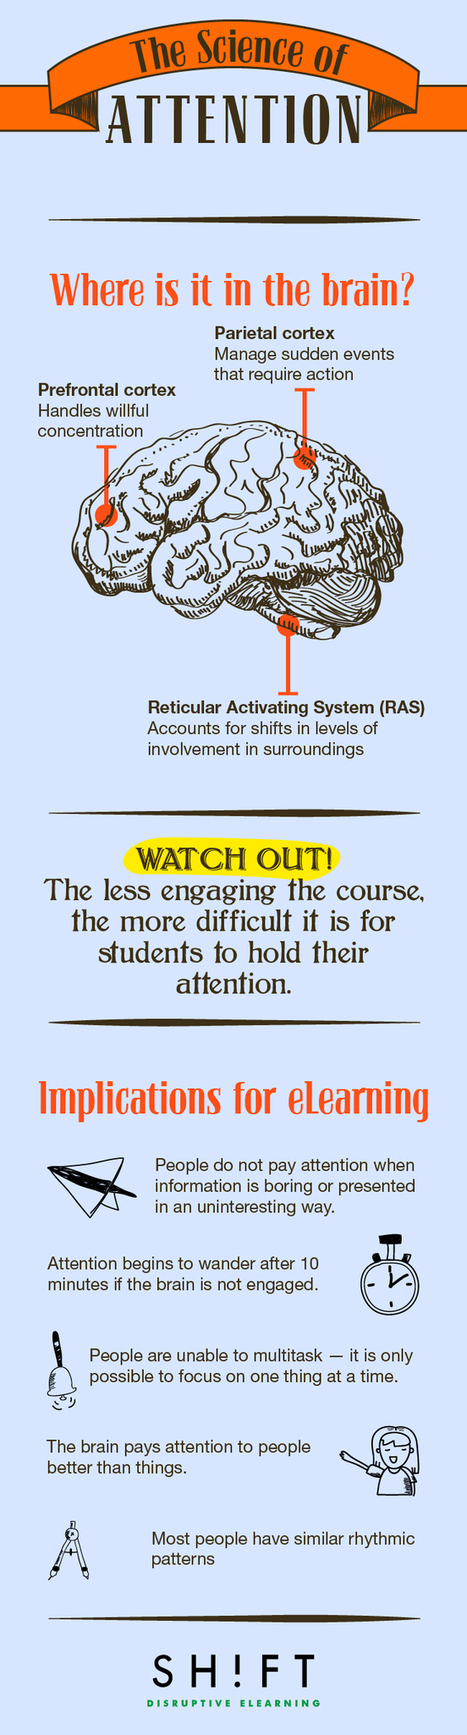 The Science of Attention in eLearning Infographic | iEduc | Scoop.it